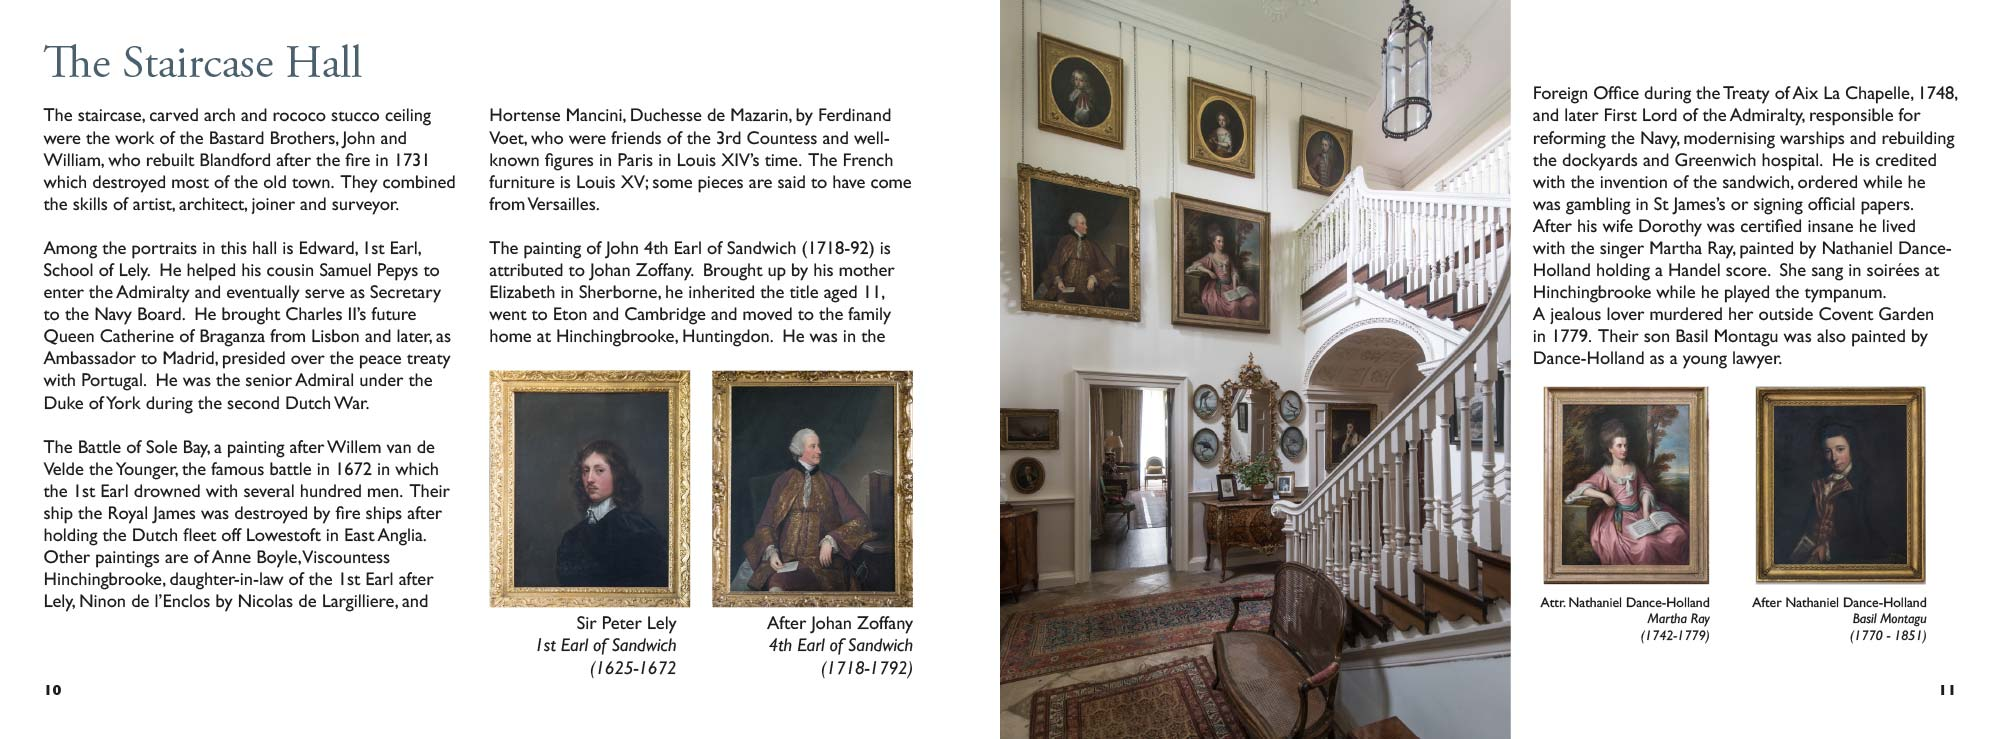 Mapperton Guidebook Staircase Hall spread